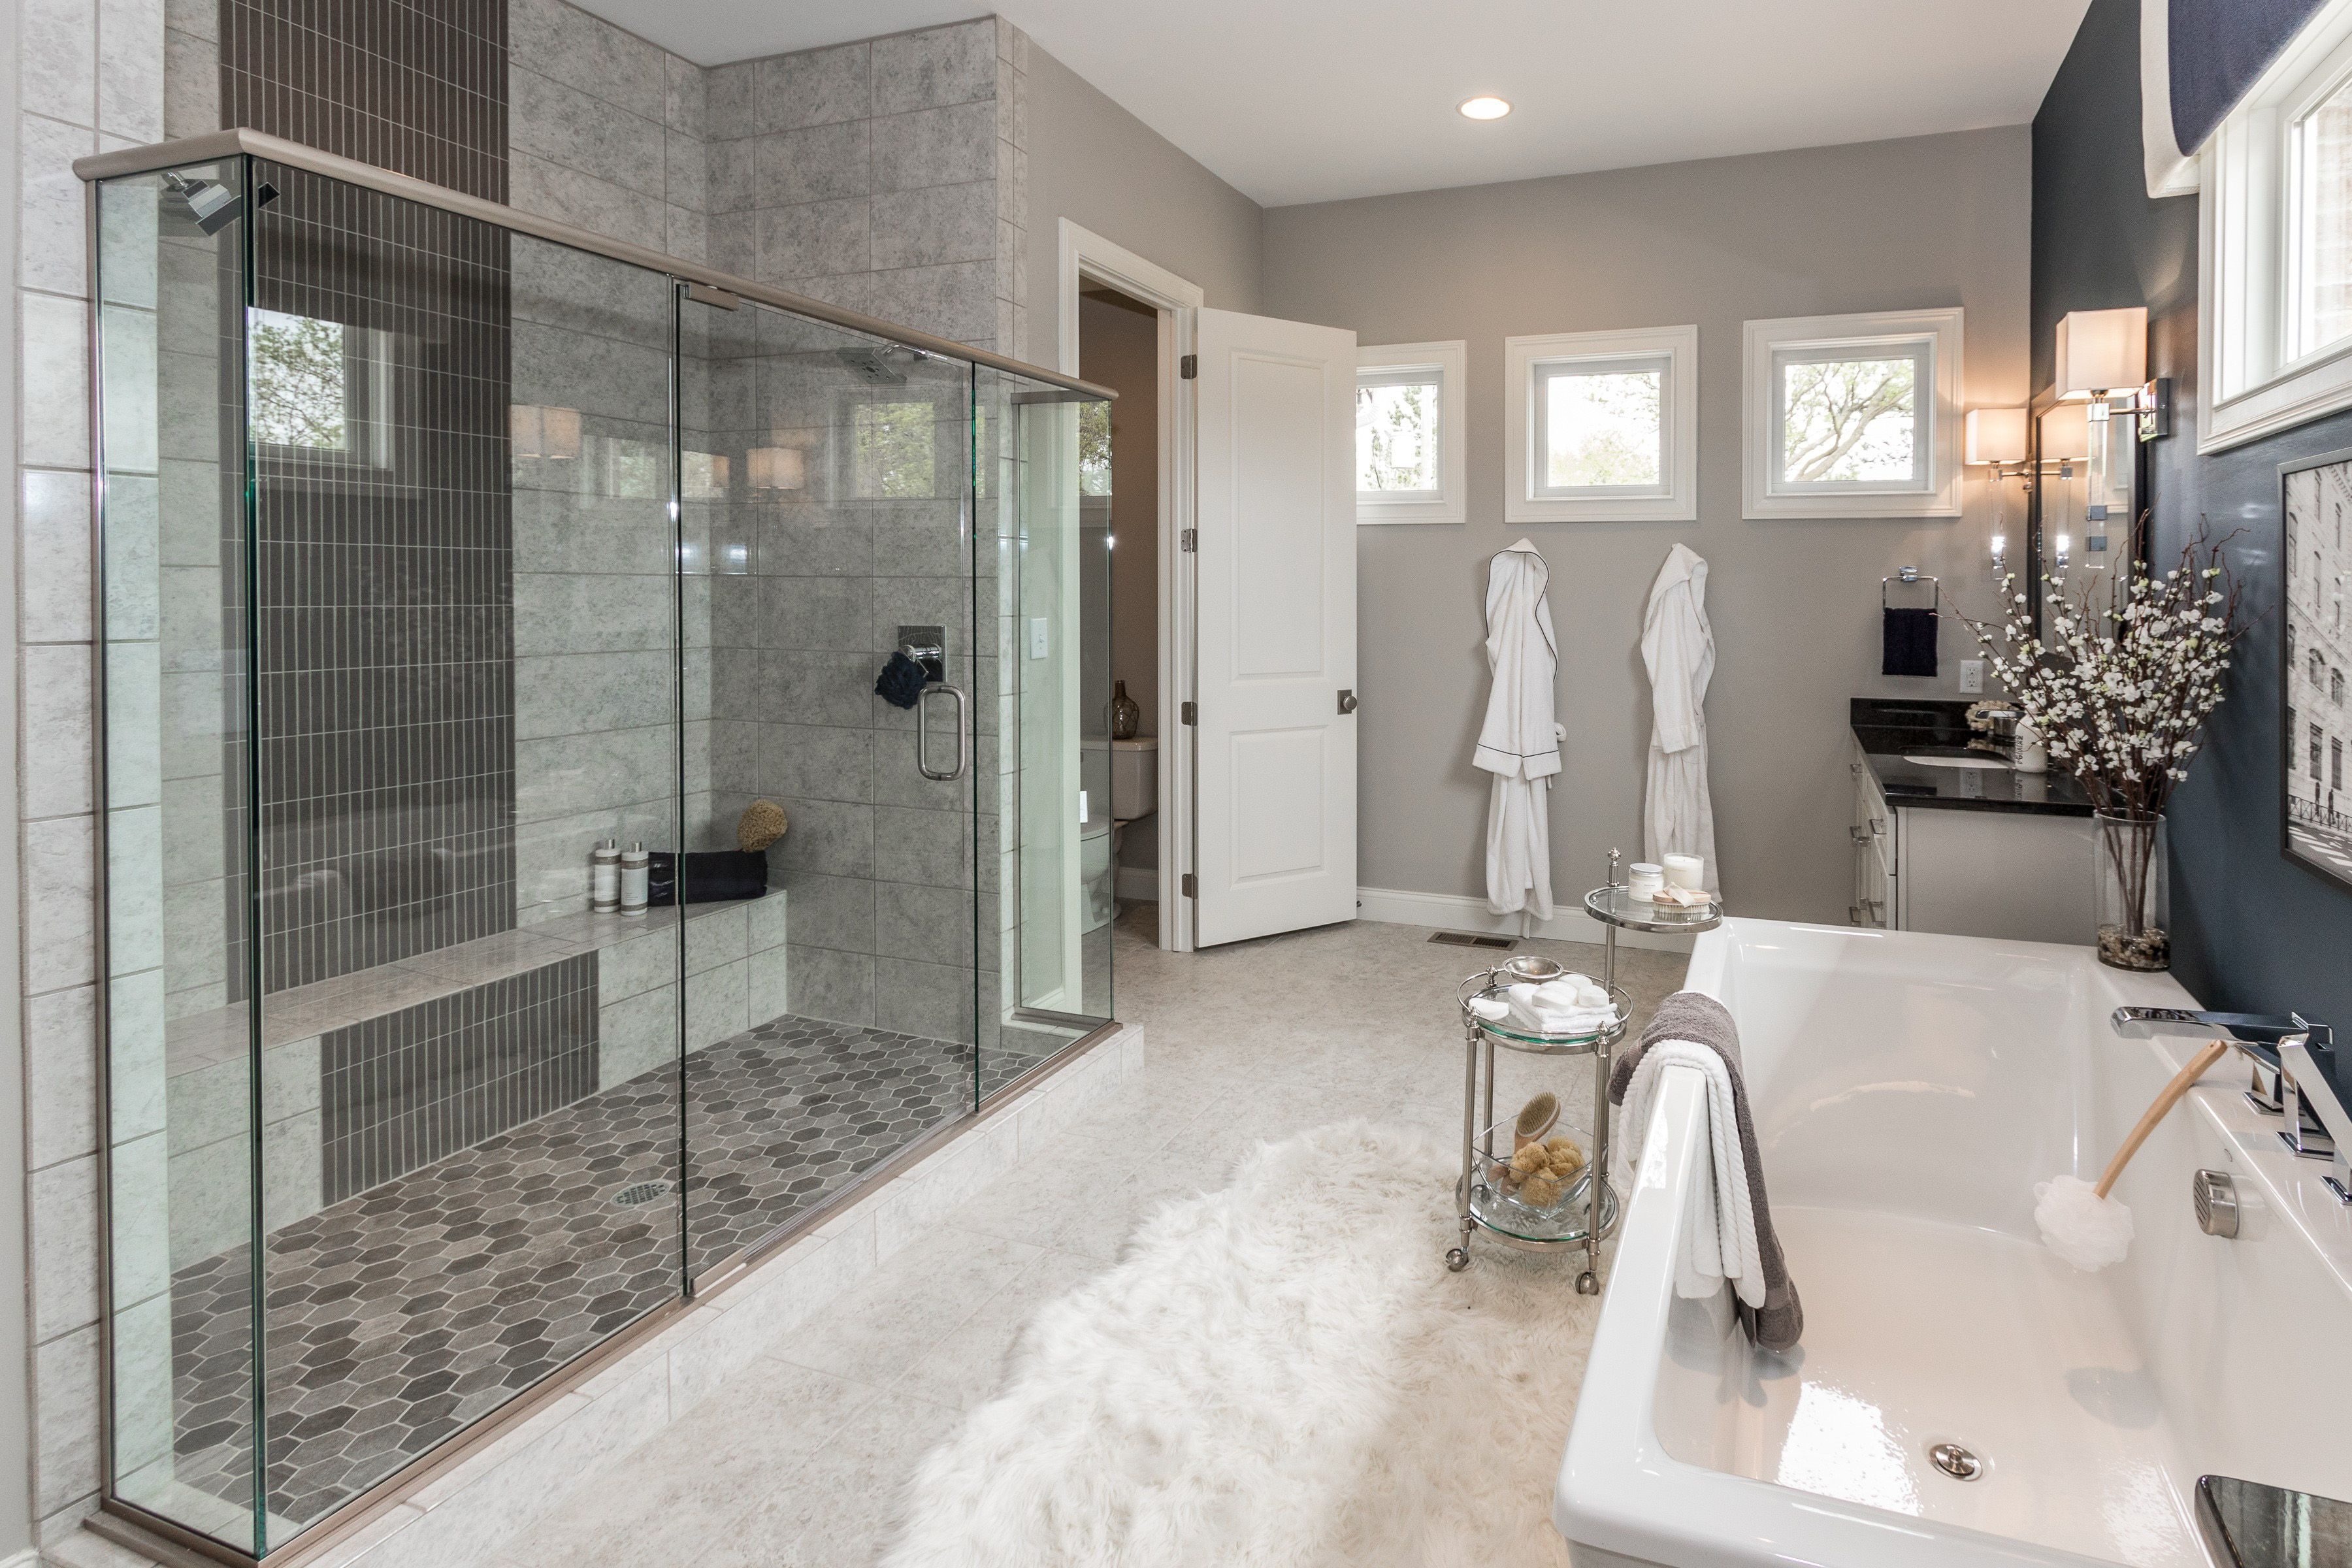 Make Yourself At Home In This Large And Luxurious Bathroom With A